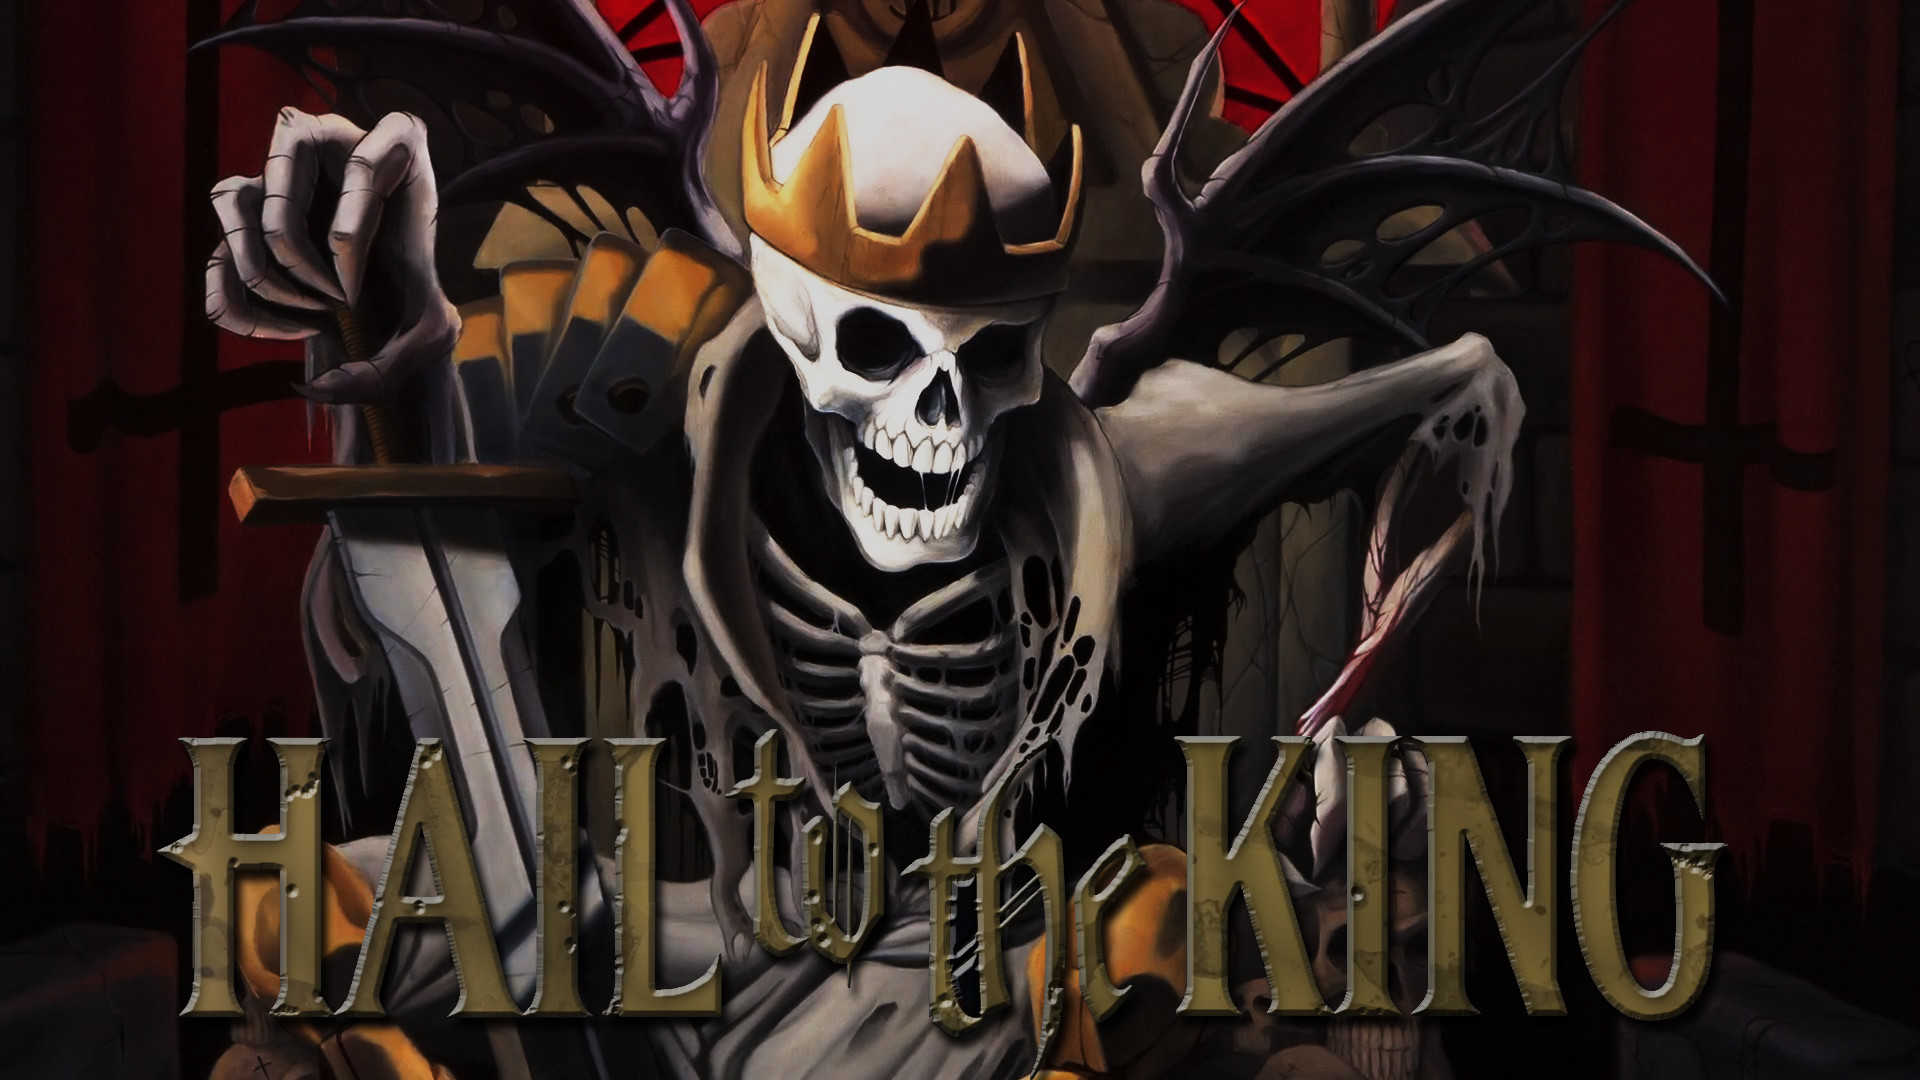 Hail to the King: Deathbat A7X Wallpaper HD Wallpaper with .